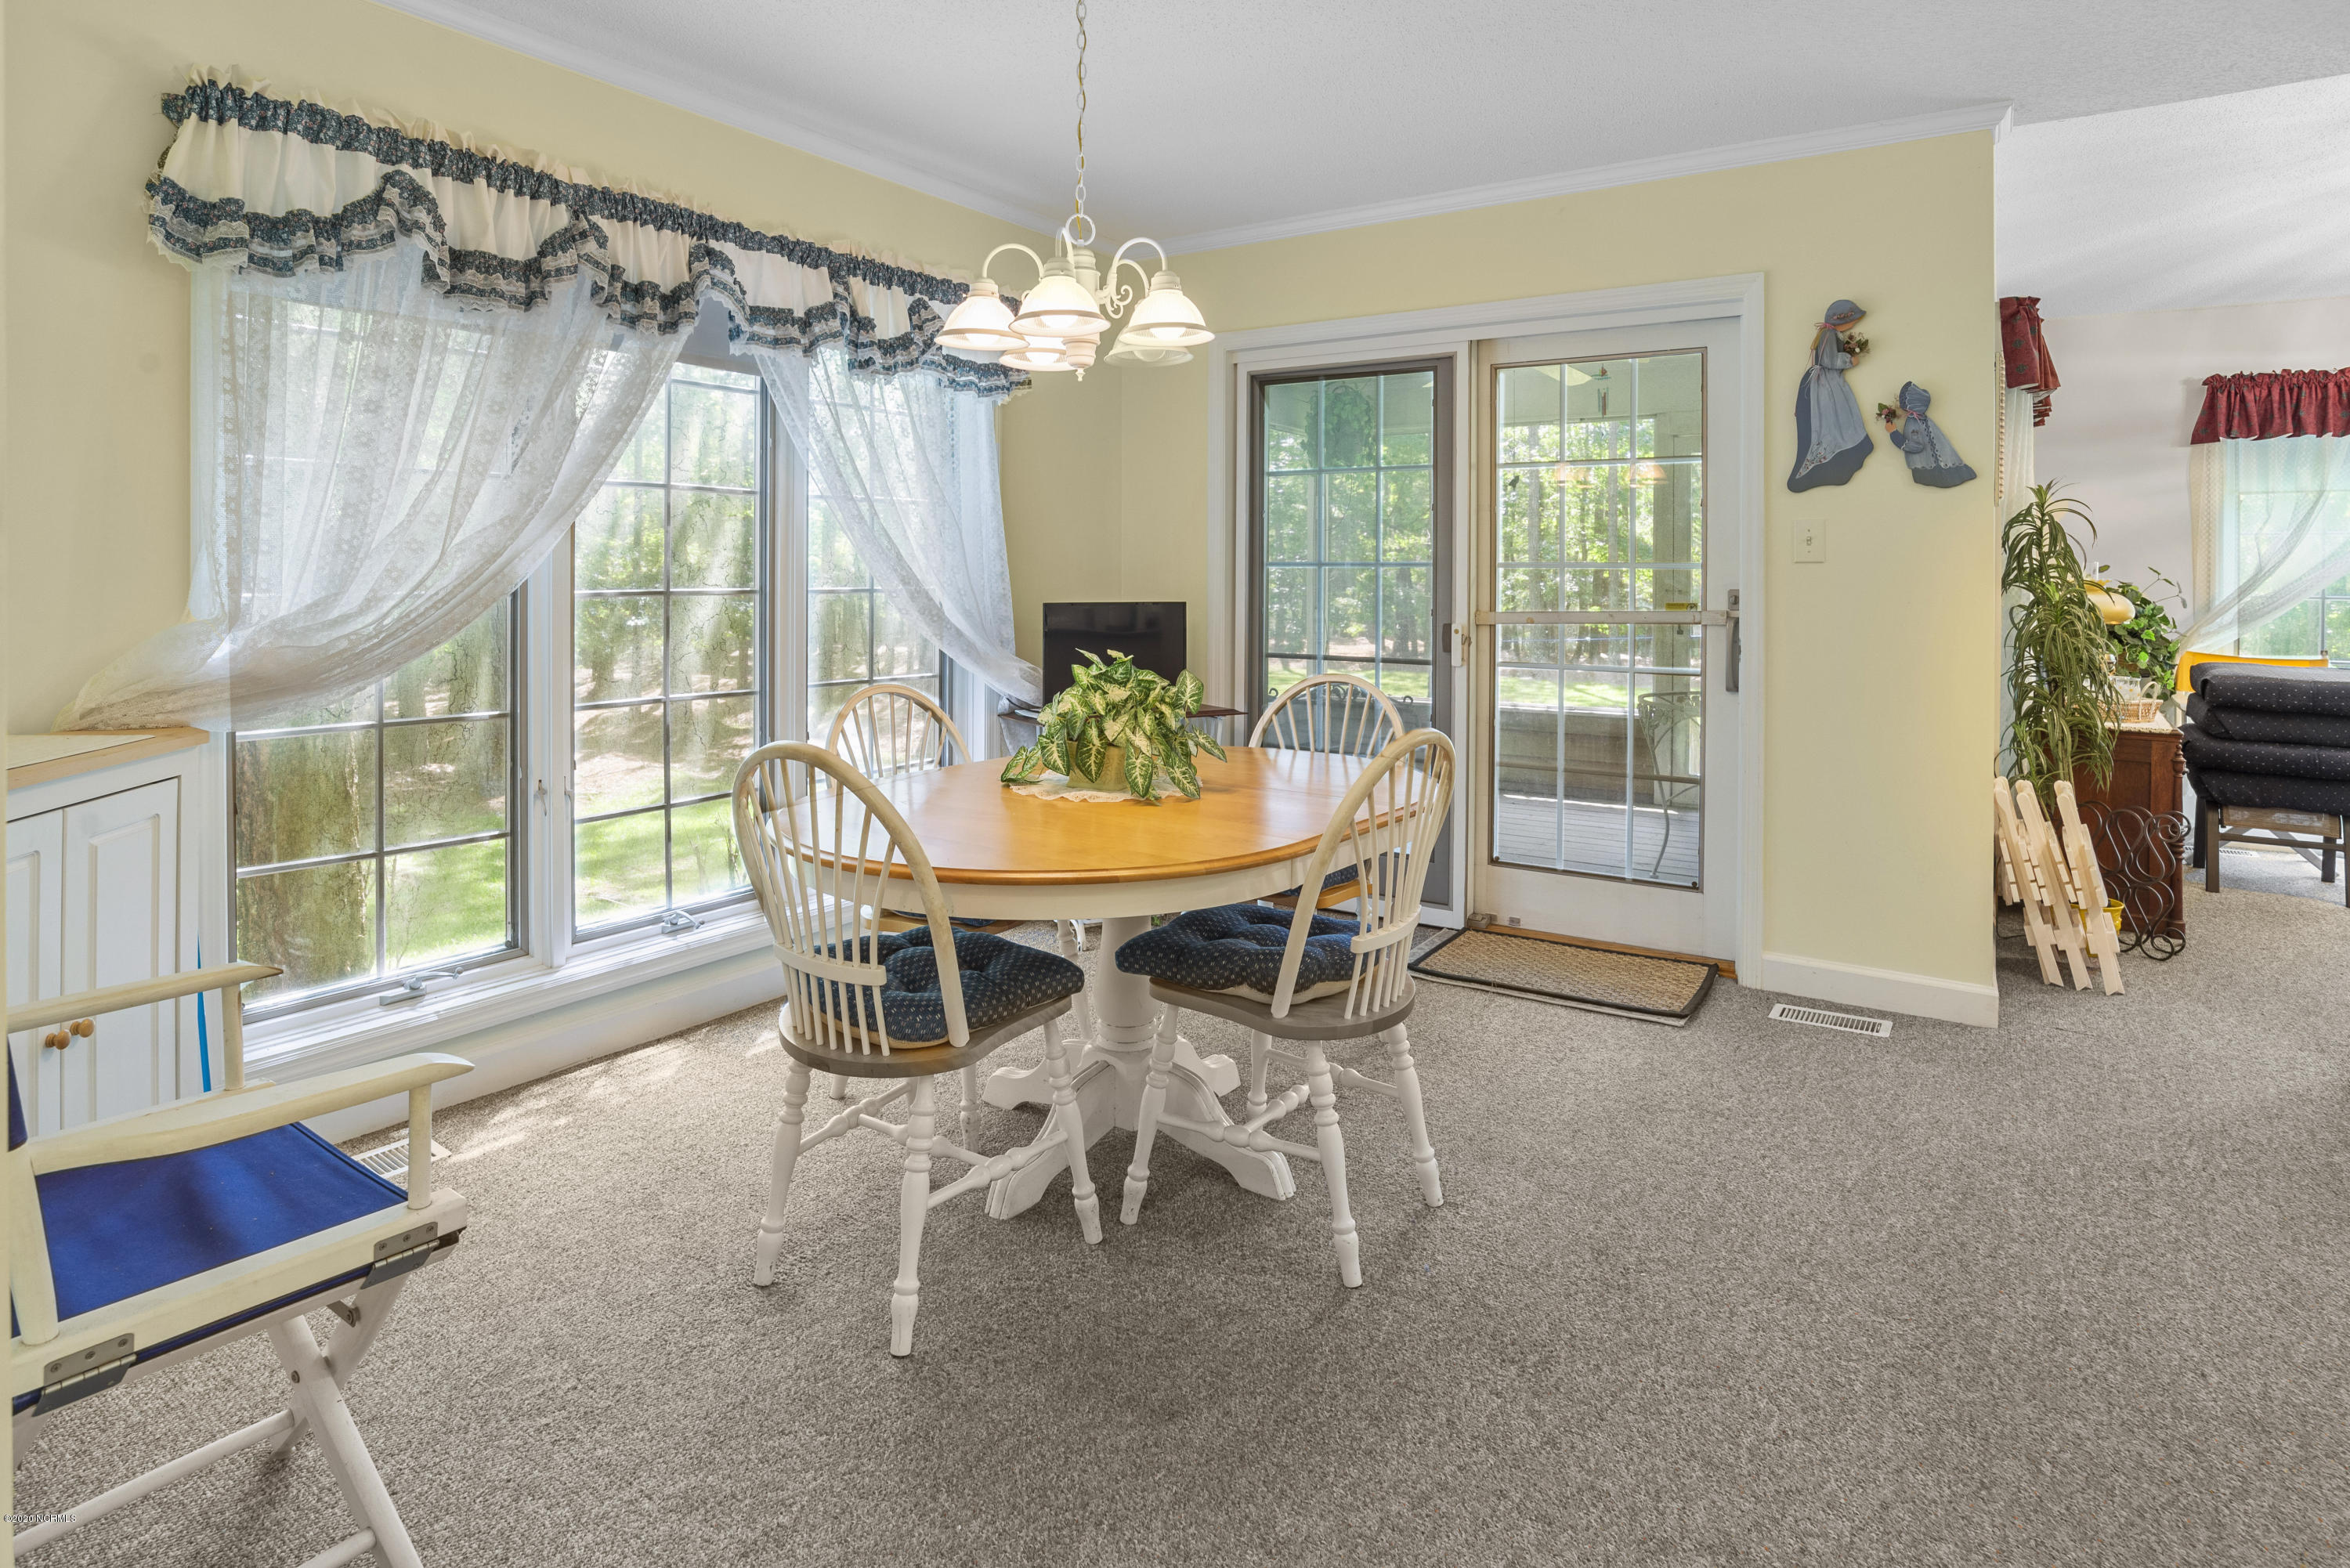 226 Spicers Creek Drive, Oriental, North Carolina 28571, 3 Bedrooms Bedrooms, 8 Rooms Rooms,2 BathroomsBathrooms,Single family residence,For sale,Spicers Creek,100163975